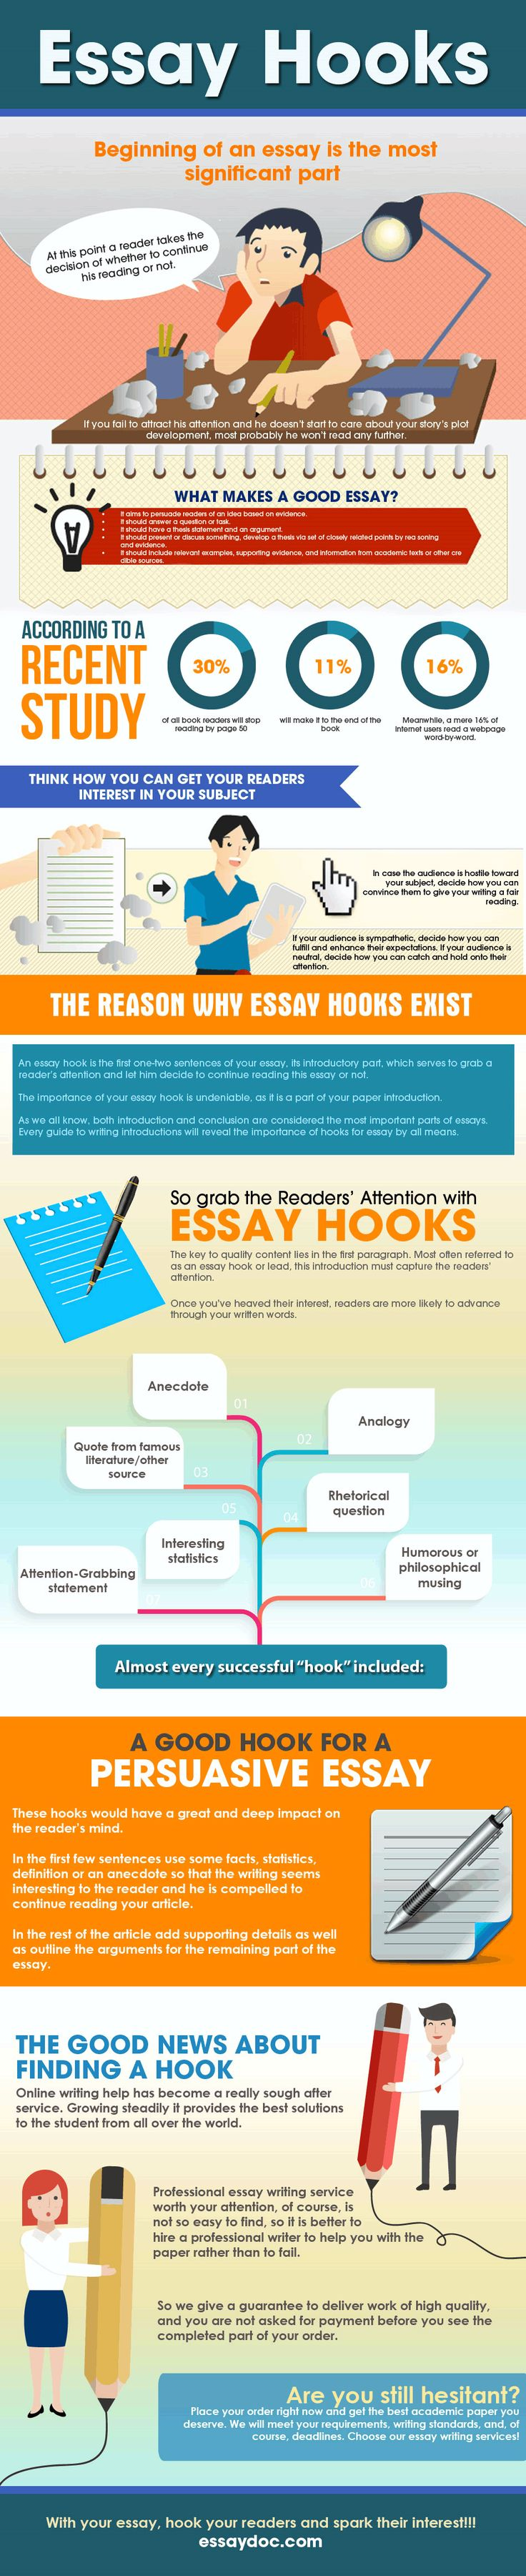 best writing an essay ideas essay tips essay essay hooks infographic